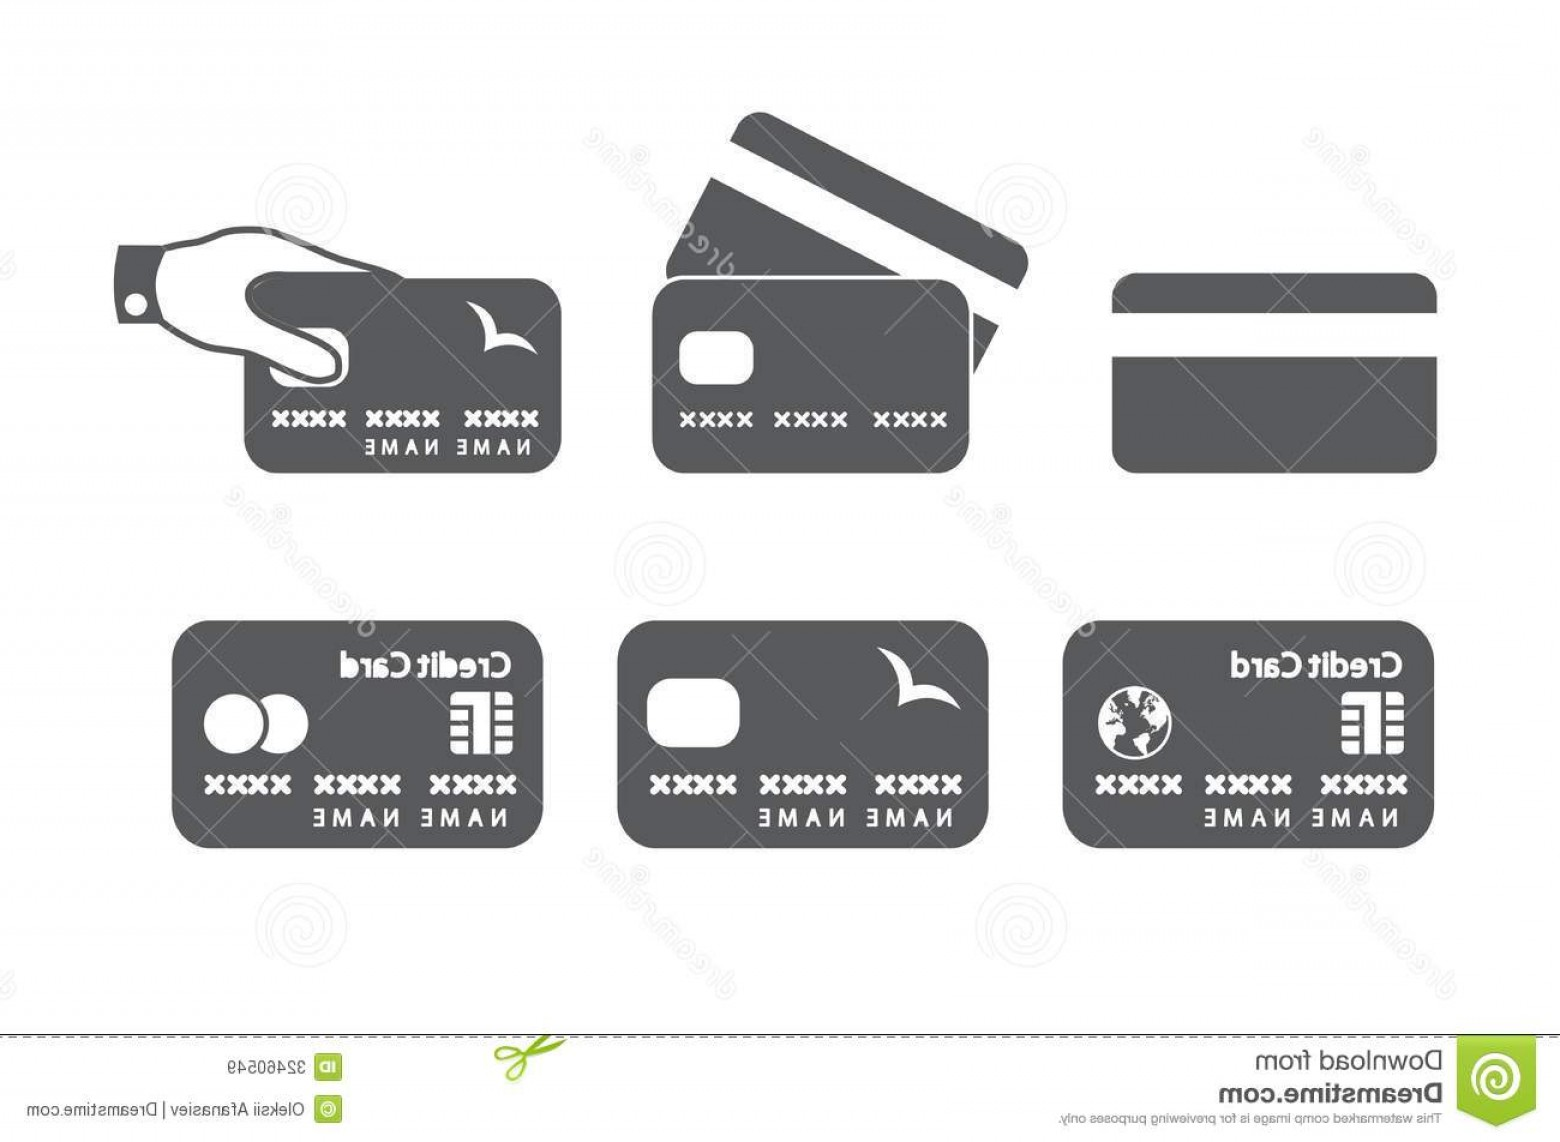 Credit Card Logos Vector: Royalty Free Stock Images Credit Card Icons Vector Illustration Image